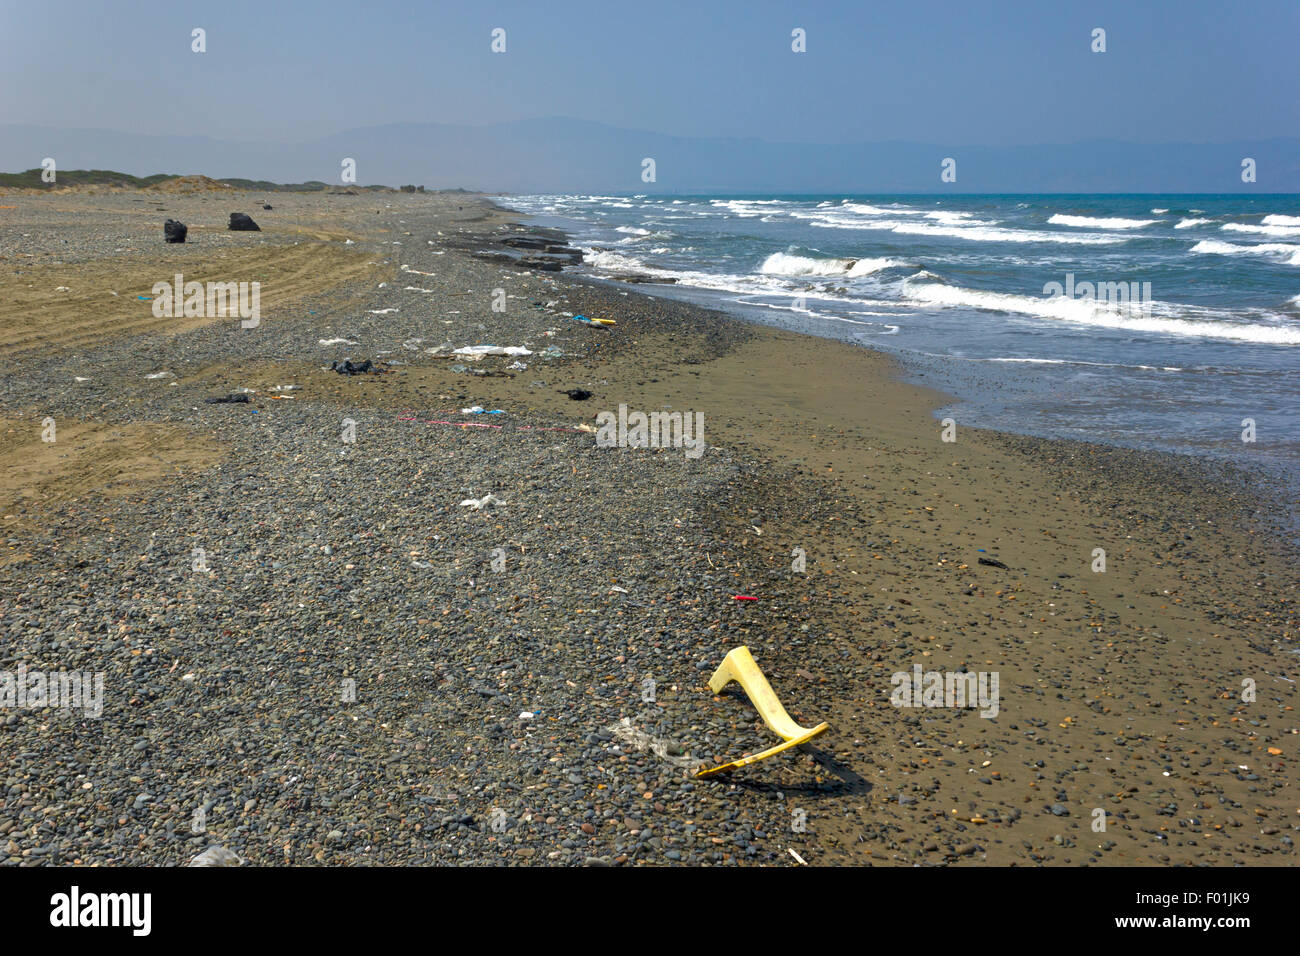 Pebbly  Mediterranean beach showing the ocean and plastic pollutants - Stock Image